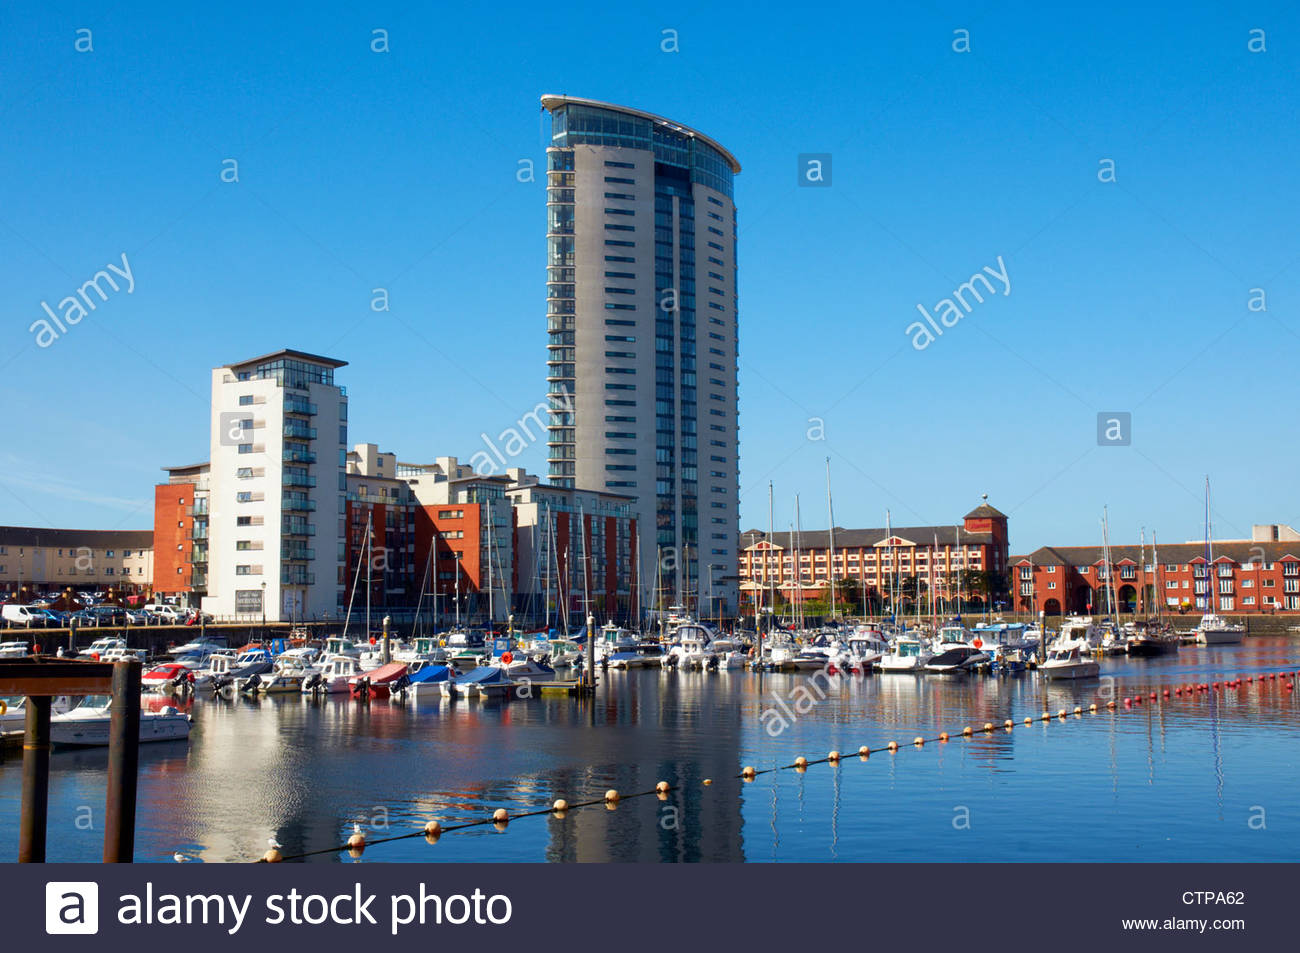 meridian tower block apartments and flats overlooking pleasure boats moored in swansea waterfront marina SA1 - Stock Image